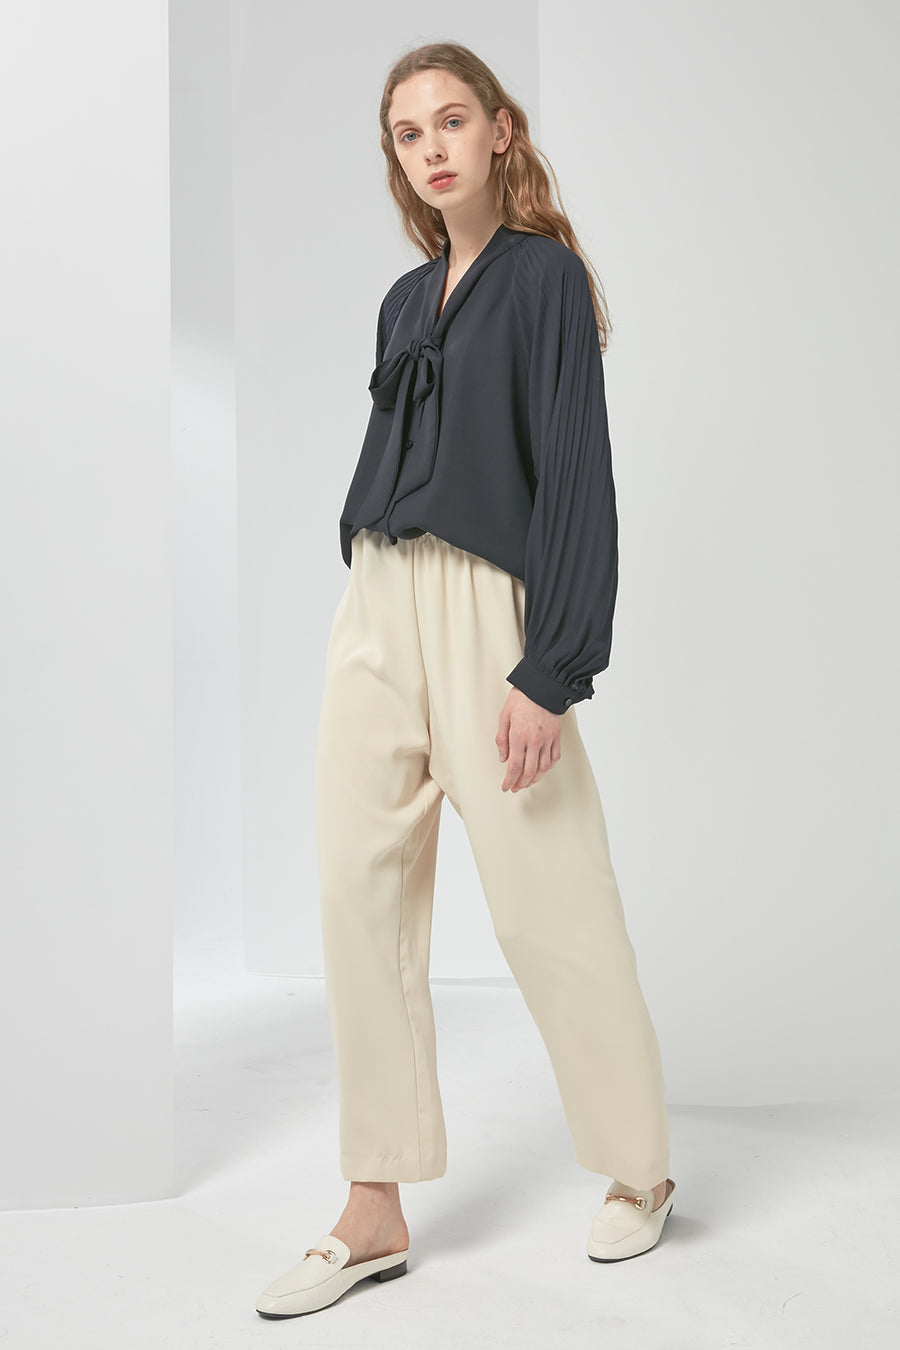 Elasticated chiffon trousers - Zelle Studio